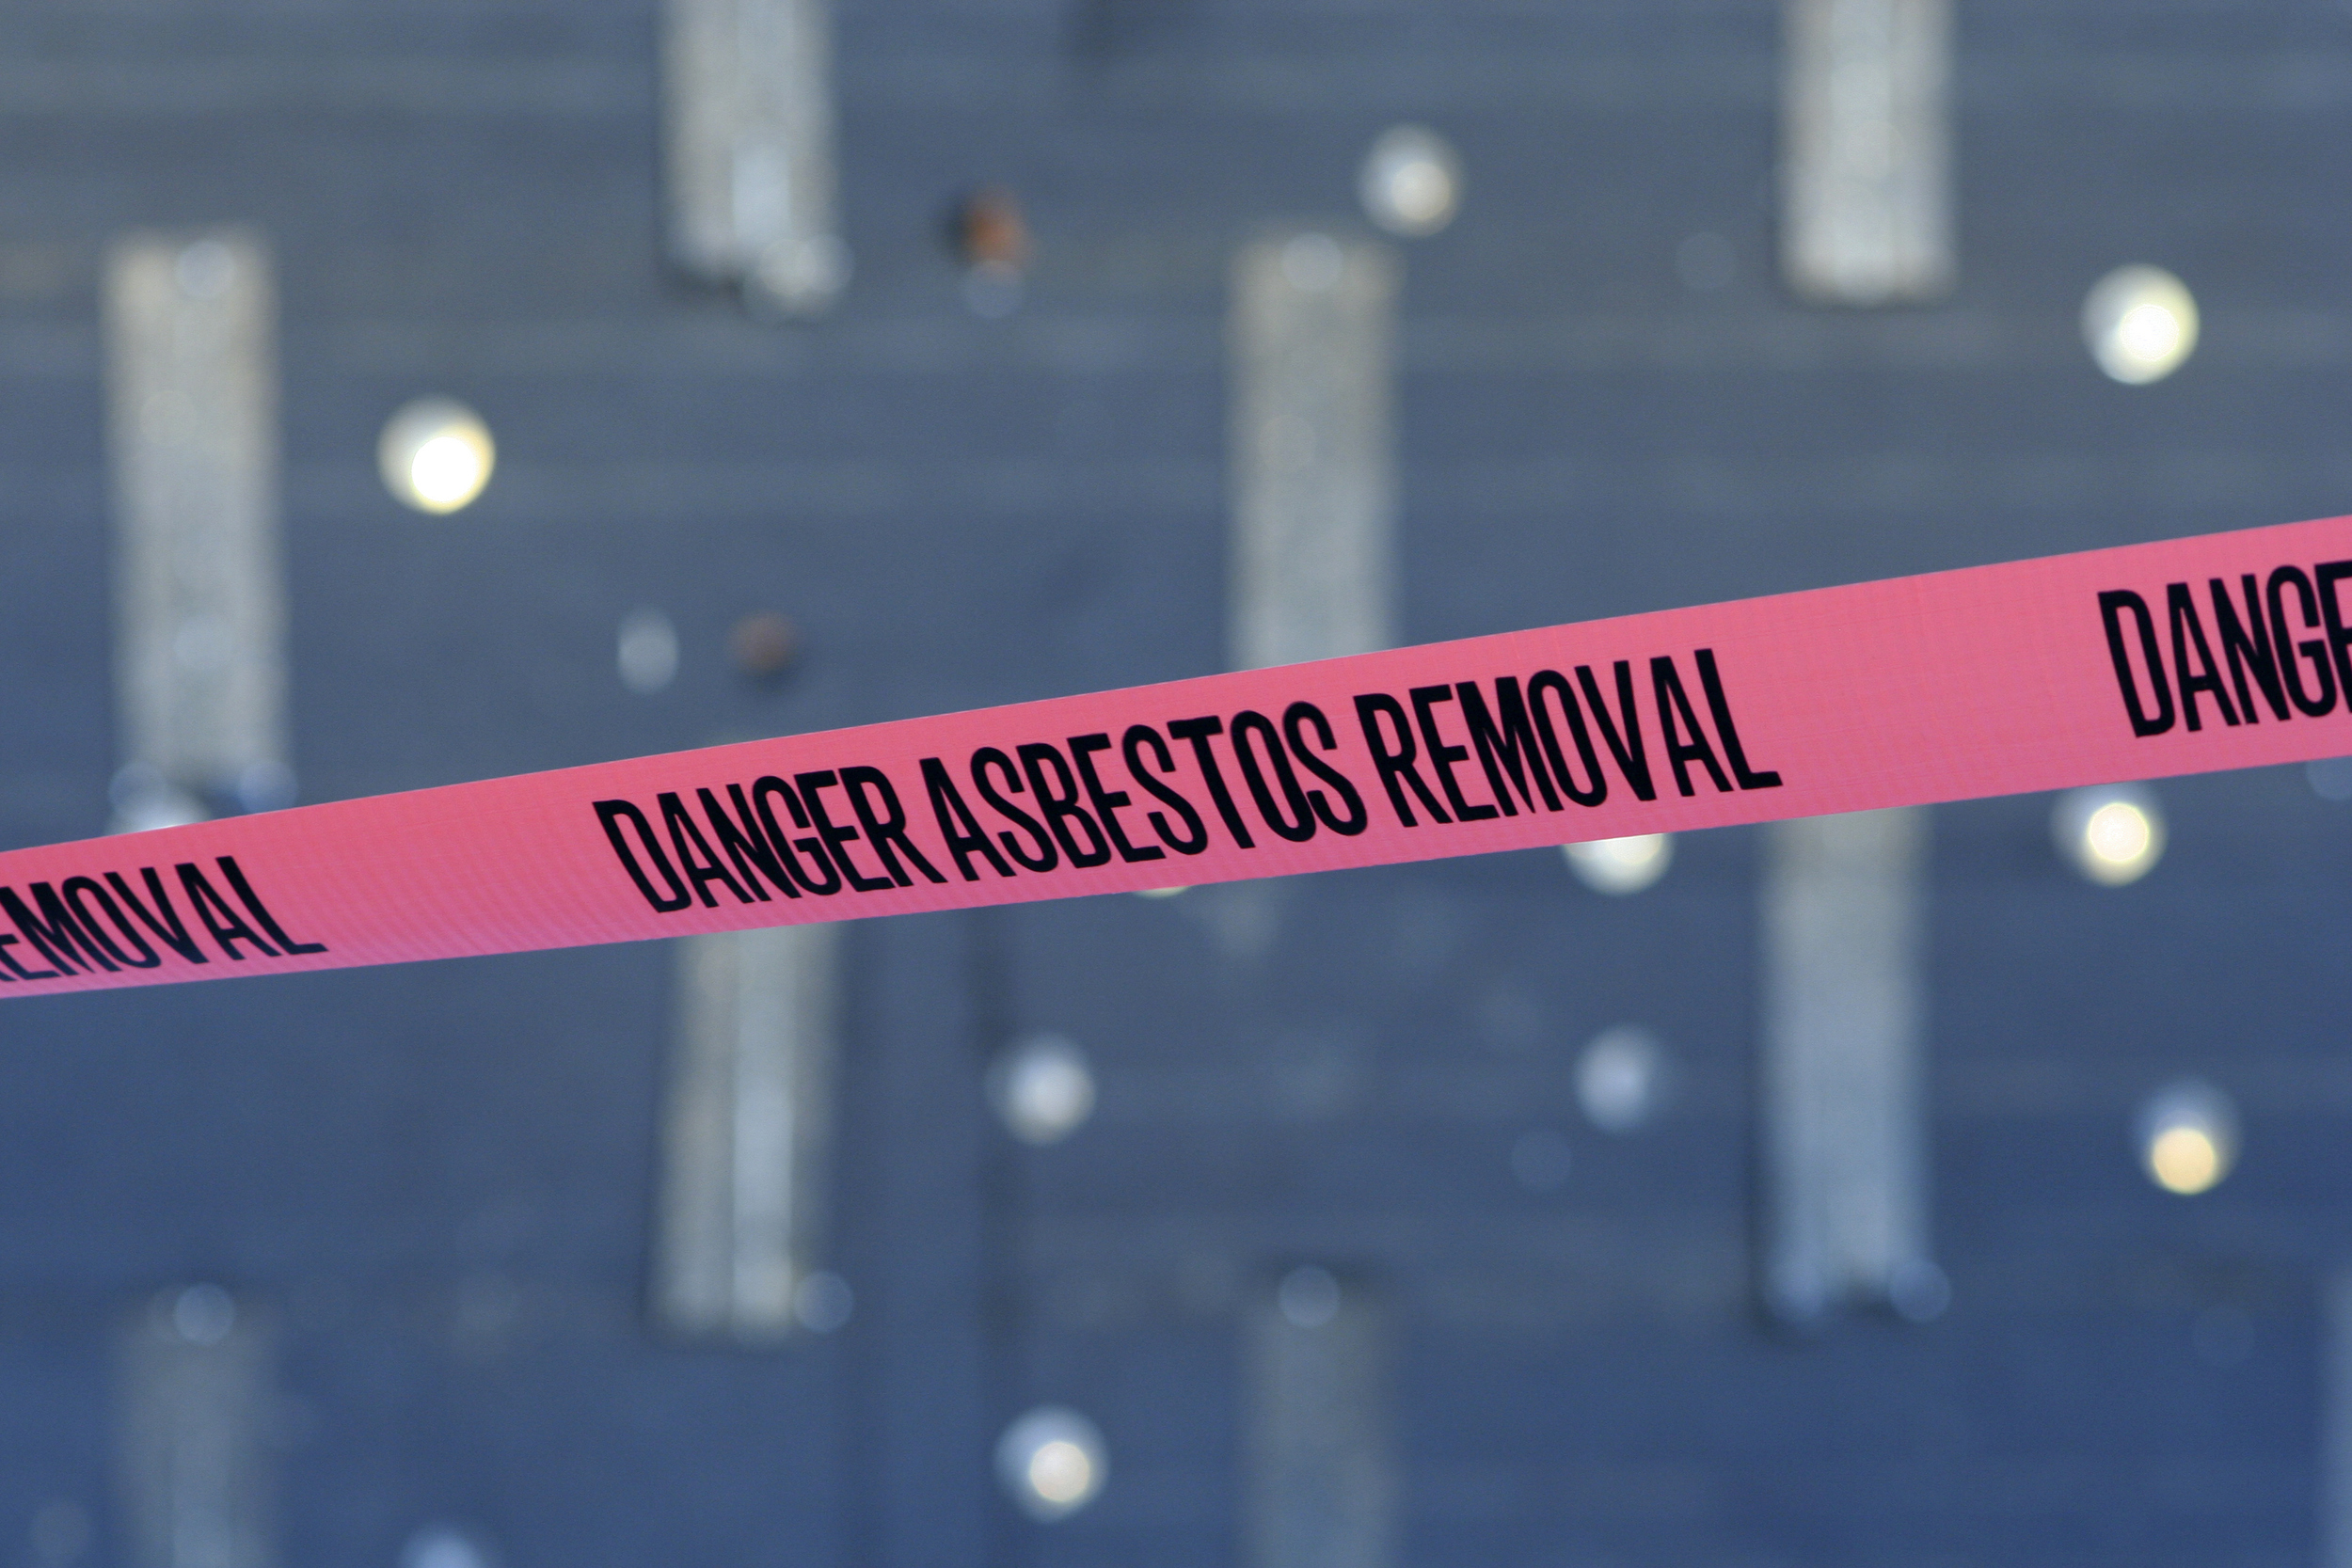 Mesothelioma Asbestos Pa Nj Personal Injury Law Firm Green Schafle Green Schafle Philadelphia Law Firm